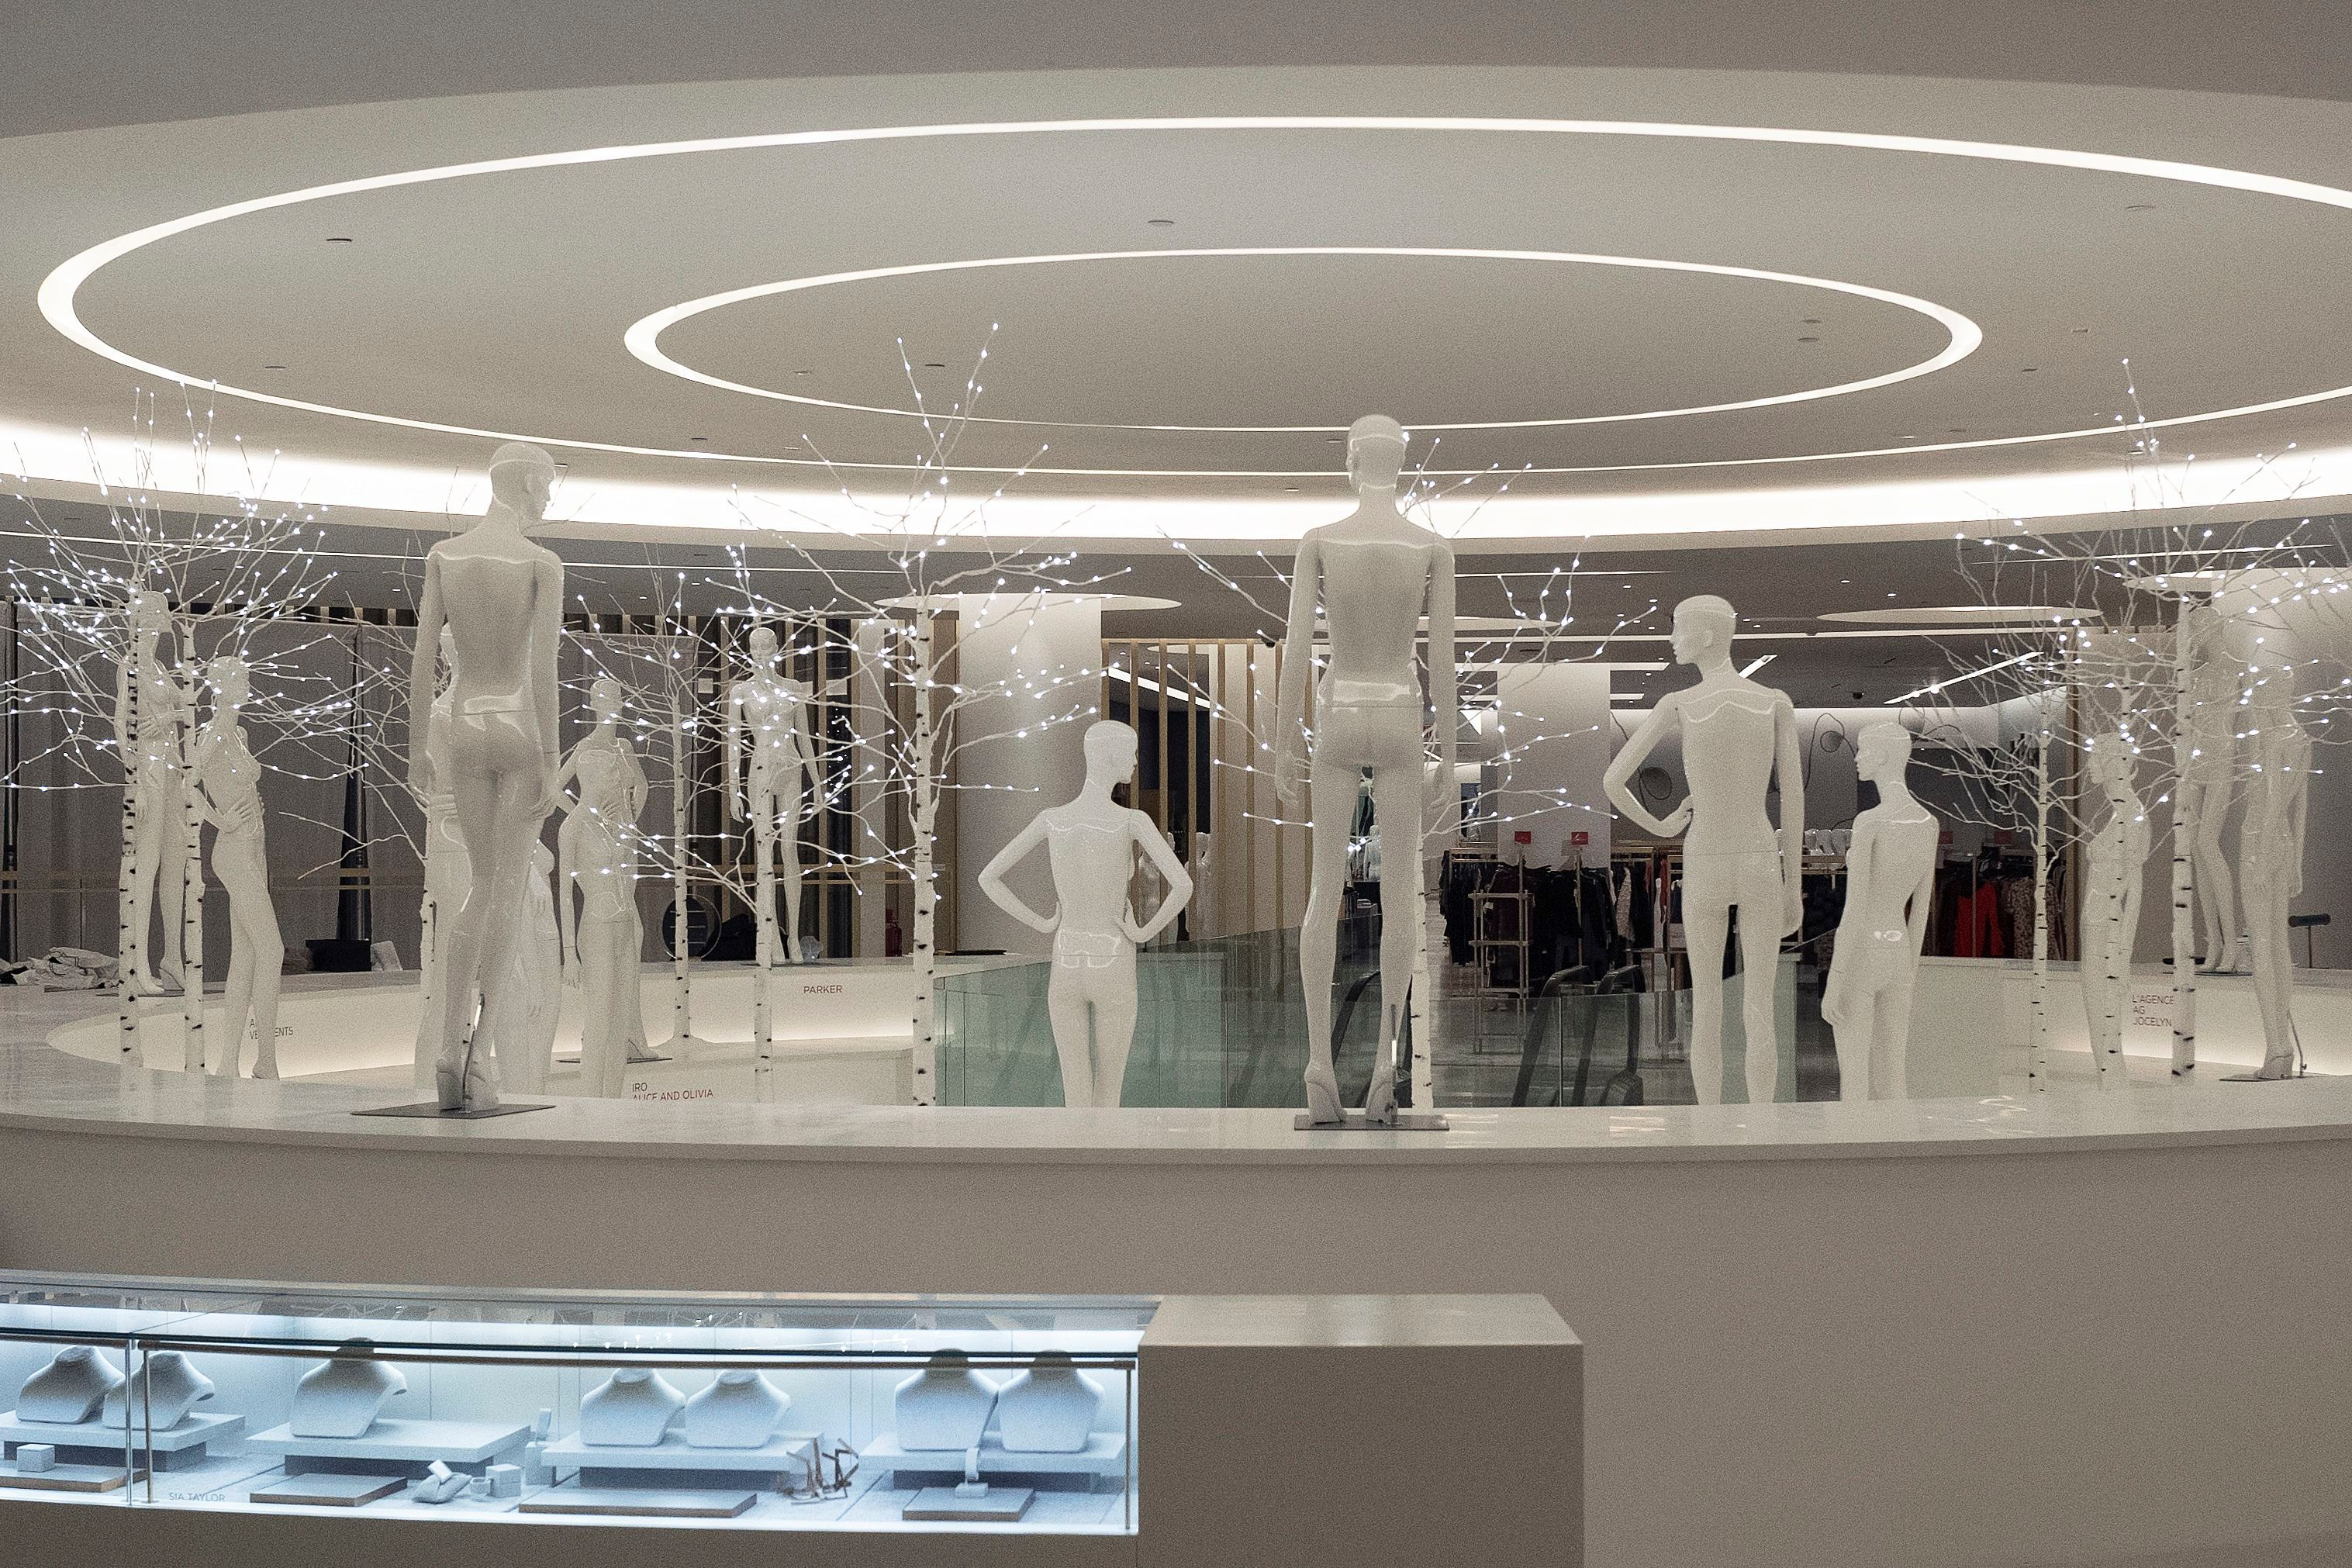 Mannequins and an empty display case are all that remain at the Saks Fifth Avenue women's shop at Brookfield Place, in New York. The shop closed on Jan. 5. Saks has a men's store in the downtown mall that will remain openSaks Store Closes, New York, USA - 08 Jan 2019